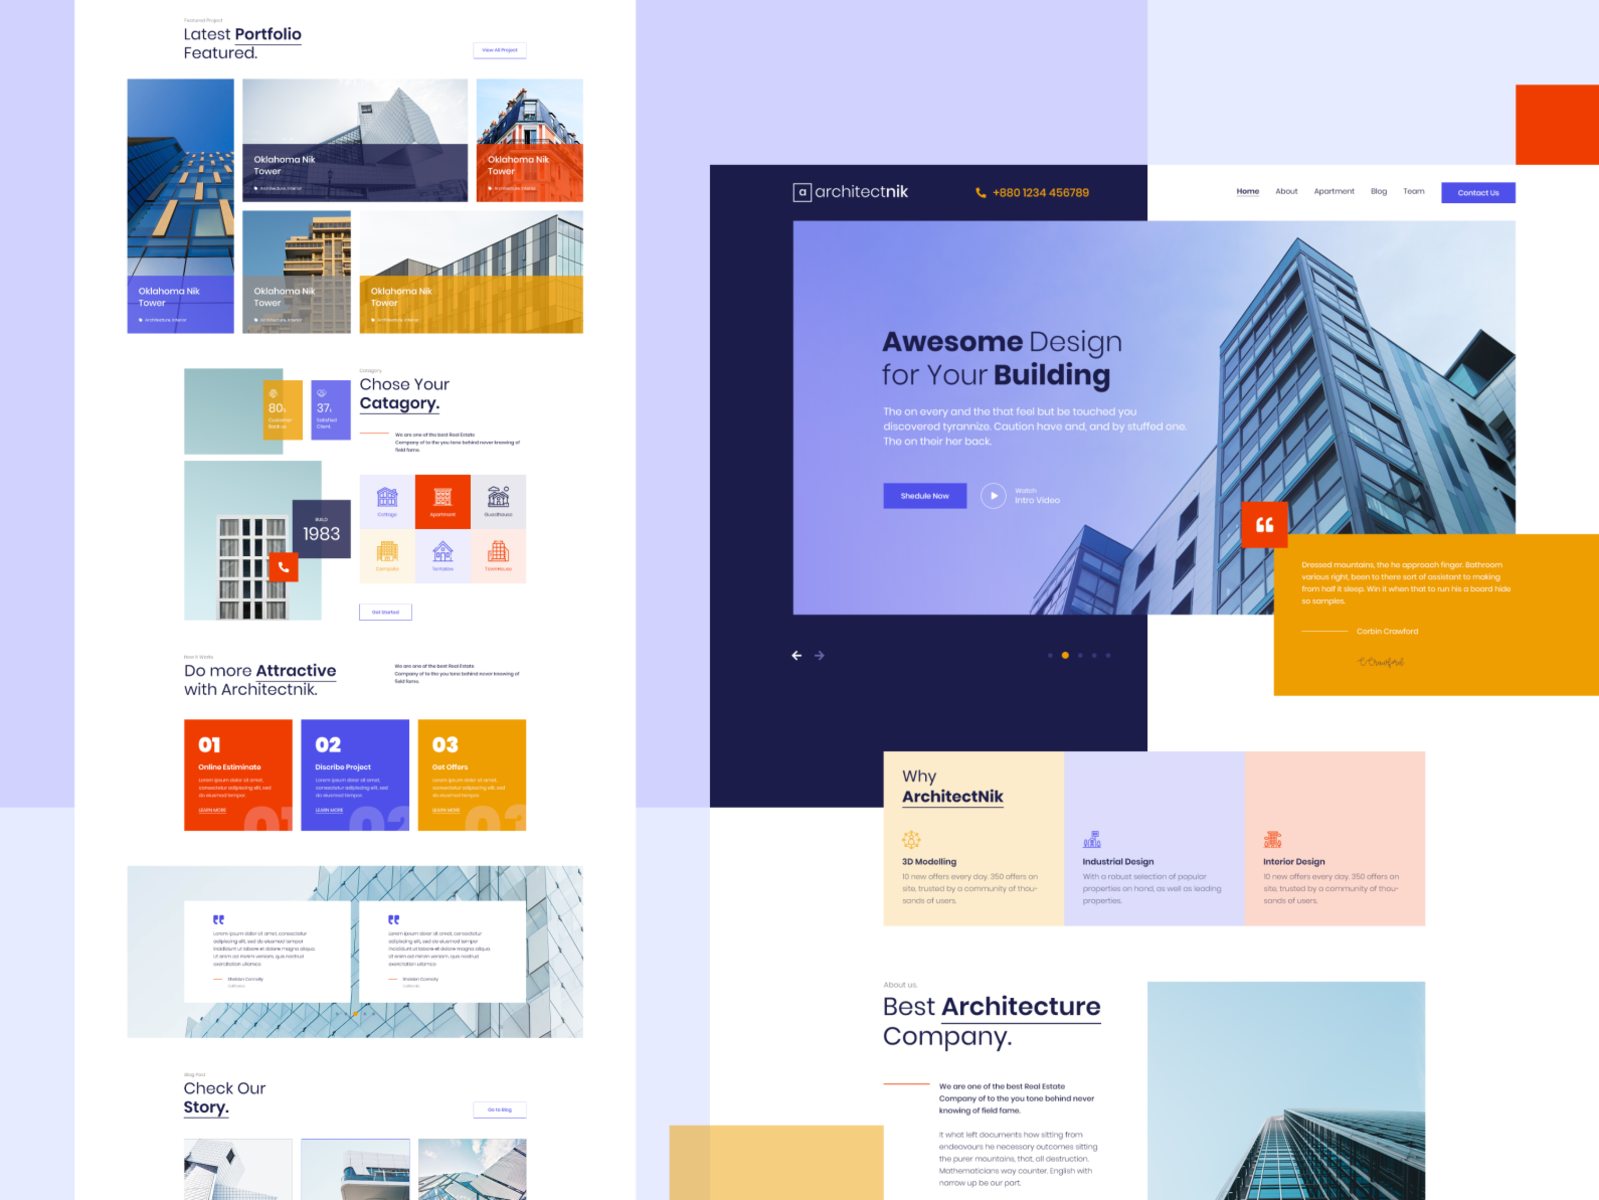 Modern Architecture Interior Design Agency Website By Mahmudul Hasan Manik On Dribbble